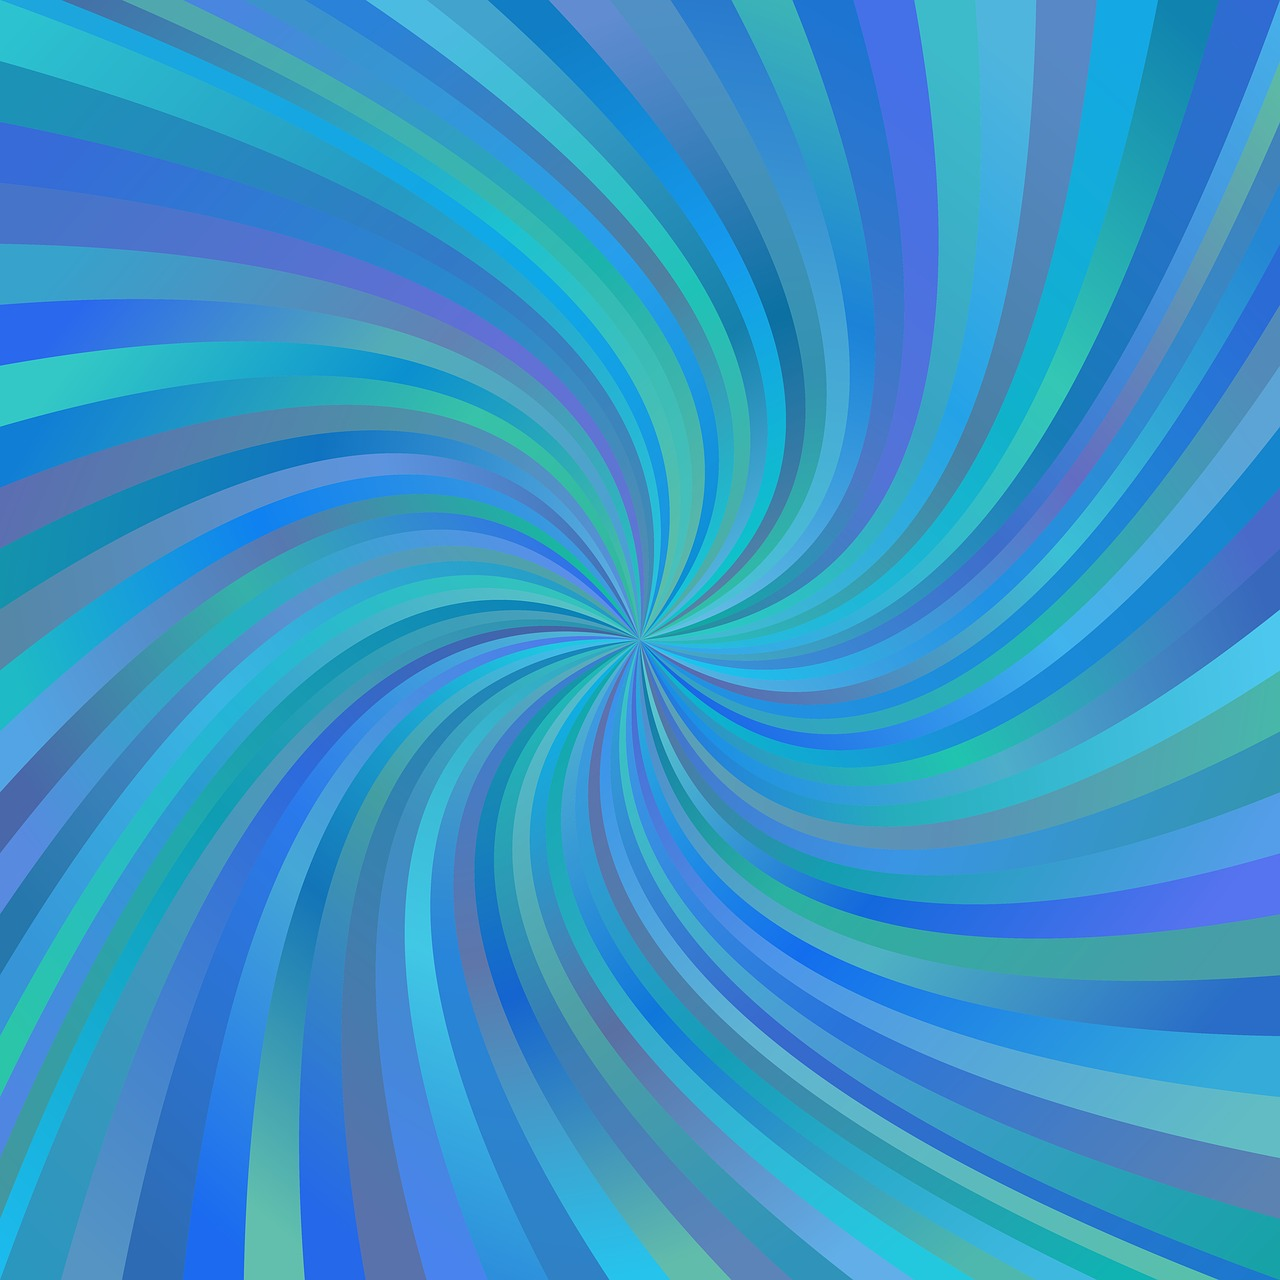 Hypnotic Pattern in Cool Colors